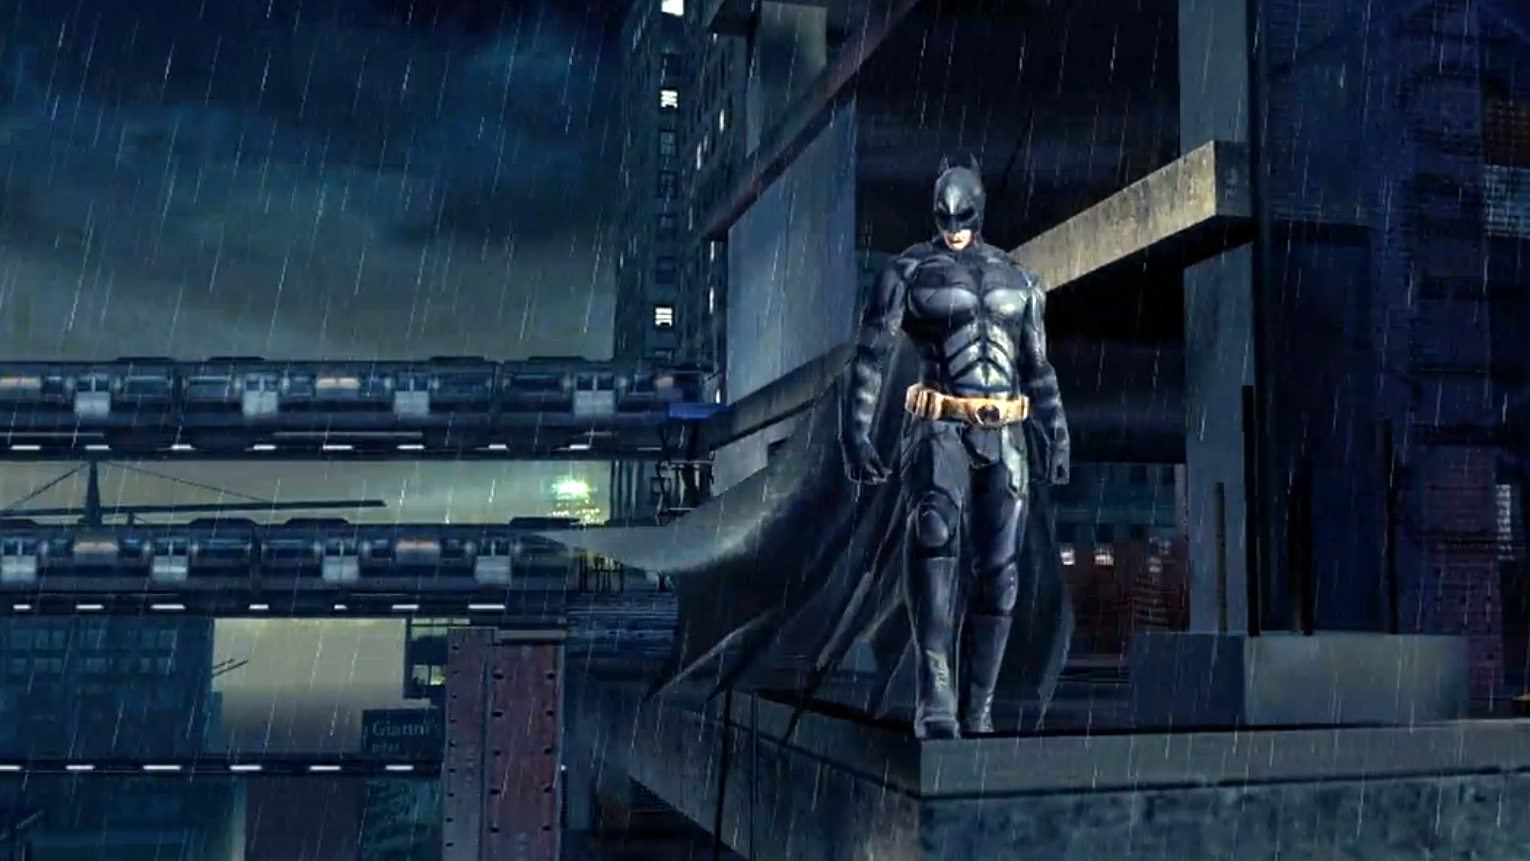 Additional details on Gameloft's upcoming The Dark Knight Rises surface